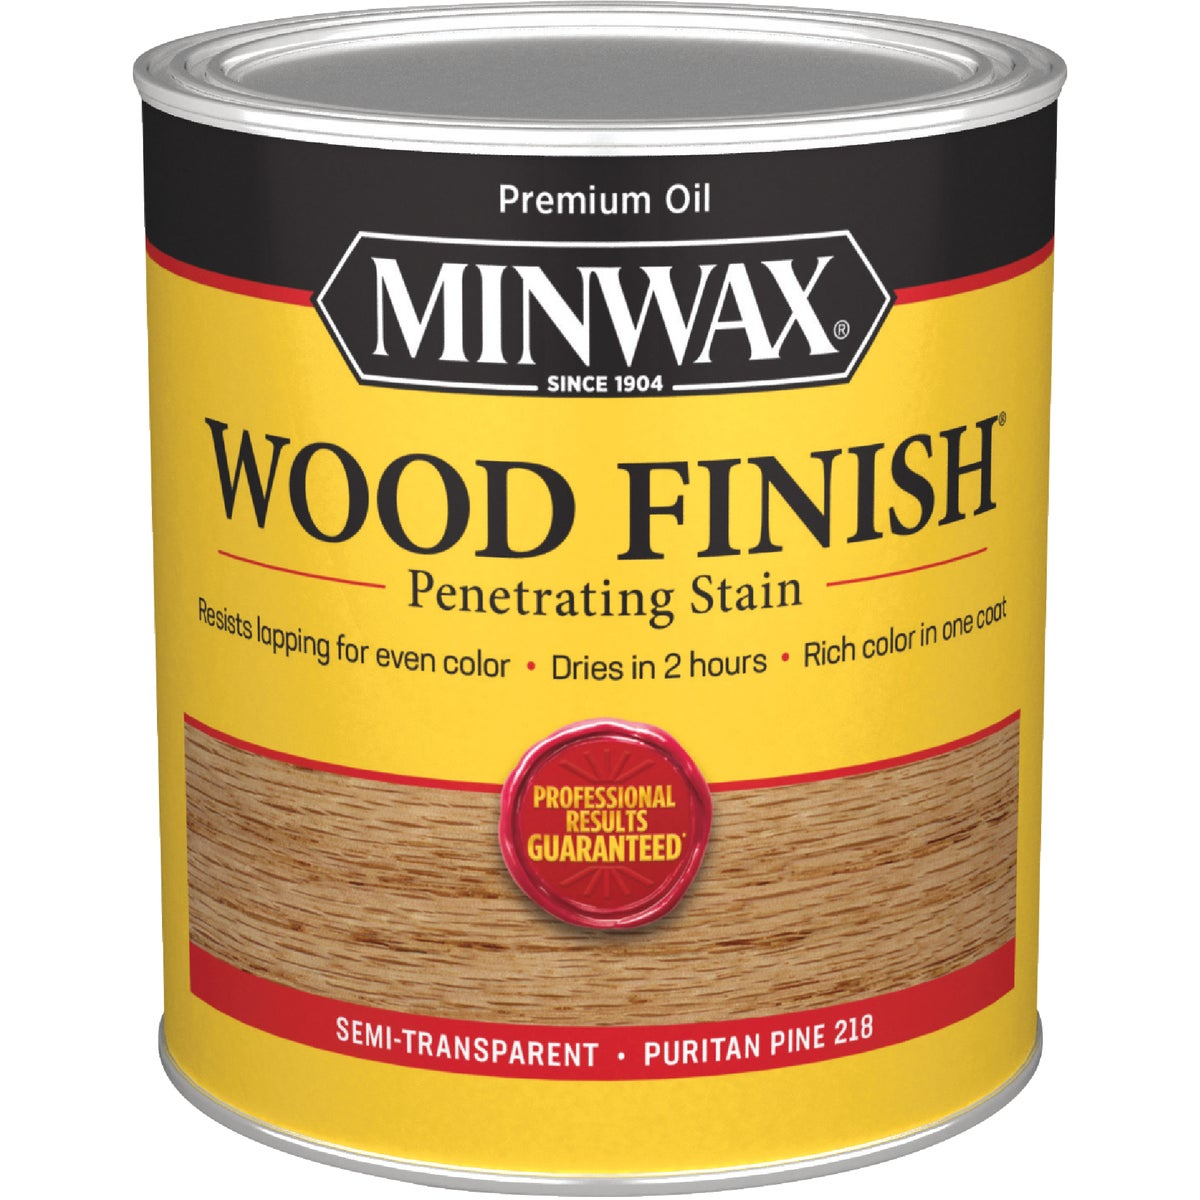 PURITAN PINE WOOD STAIN - 70003 by Minwax Company